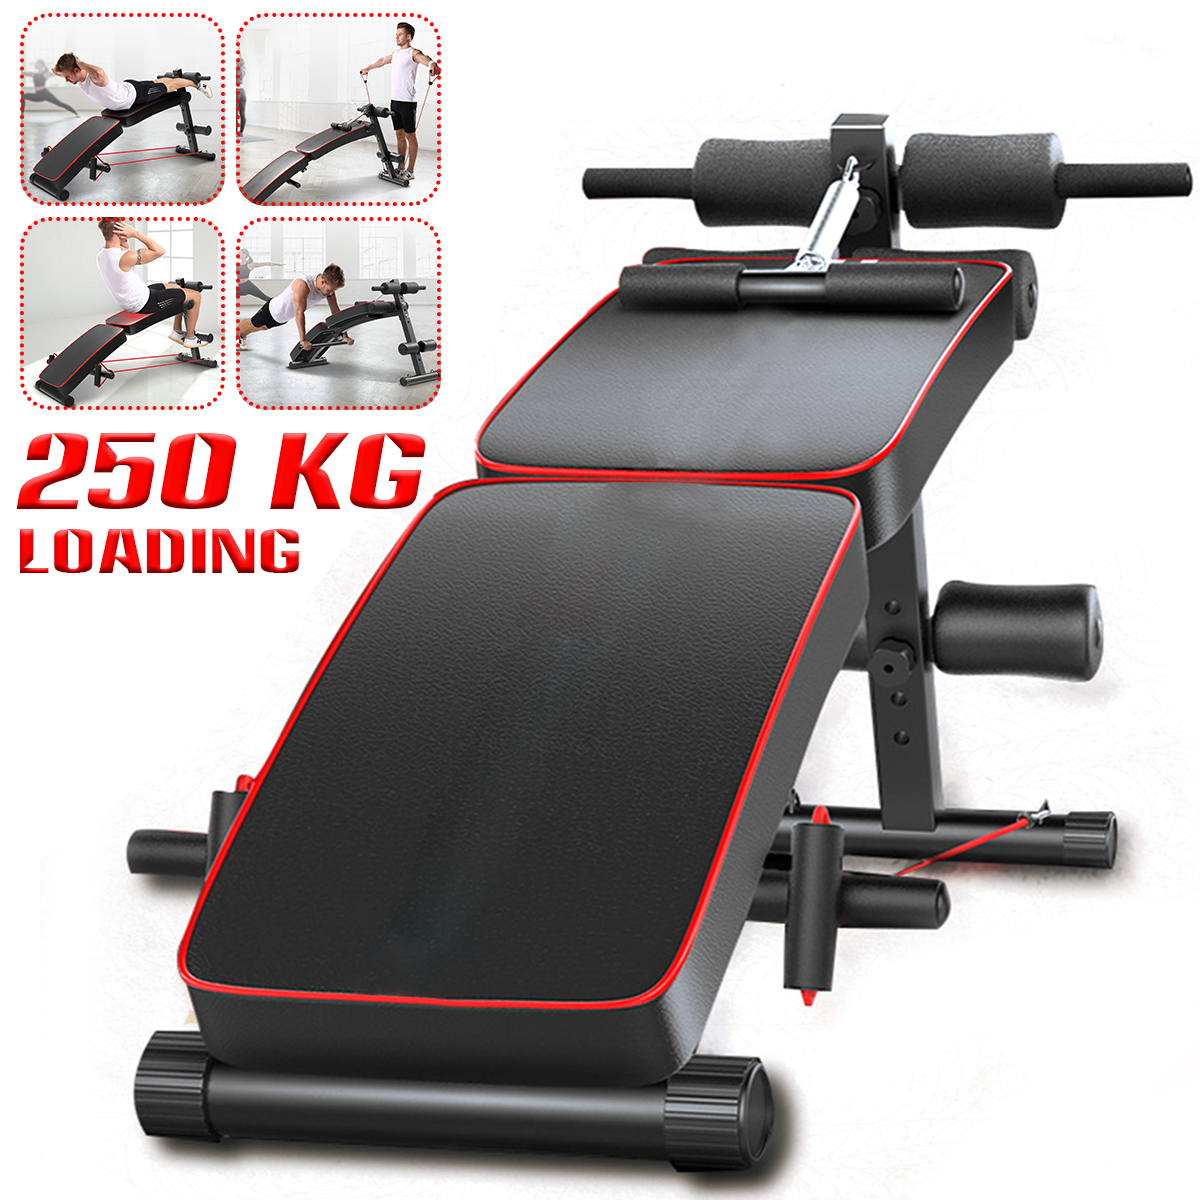 Details about  /Folding Adjustable Sit Up Abdominal Bench Press Weight Gym Ab Exercise Fitness